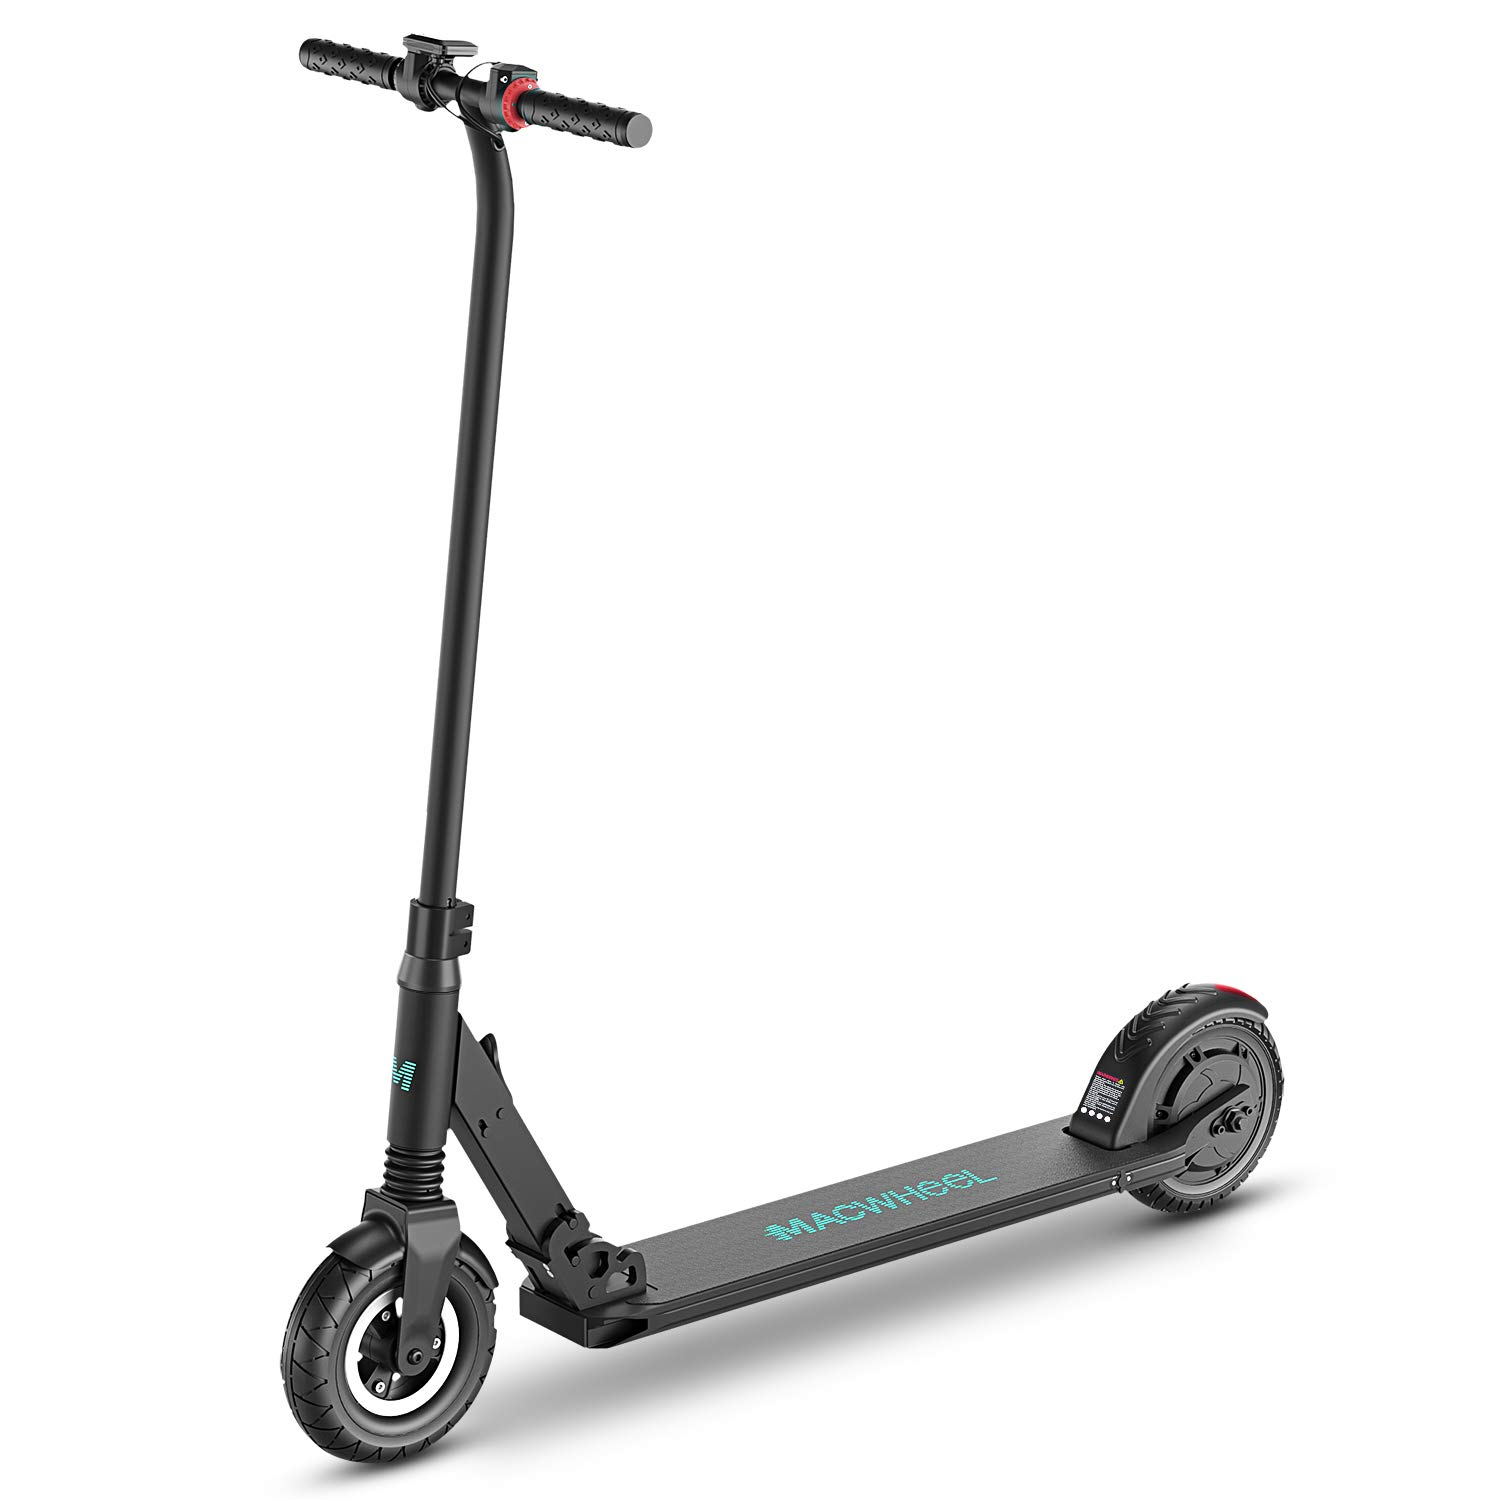 Amazon.com: Macwheel Scooter eléctrico plegable y ligero ...